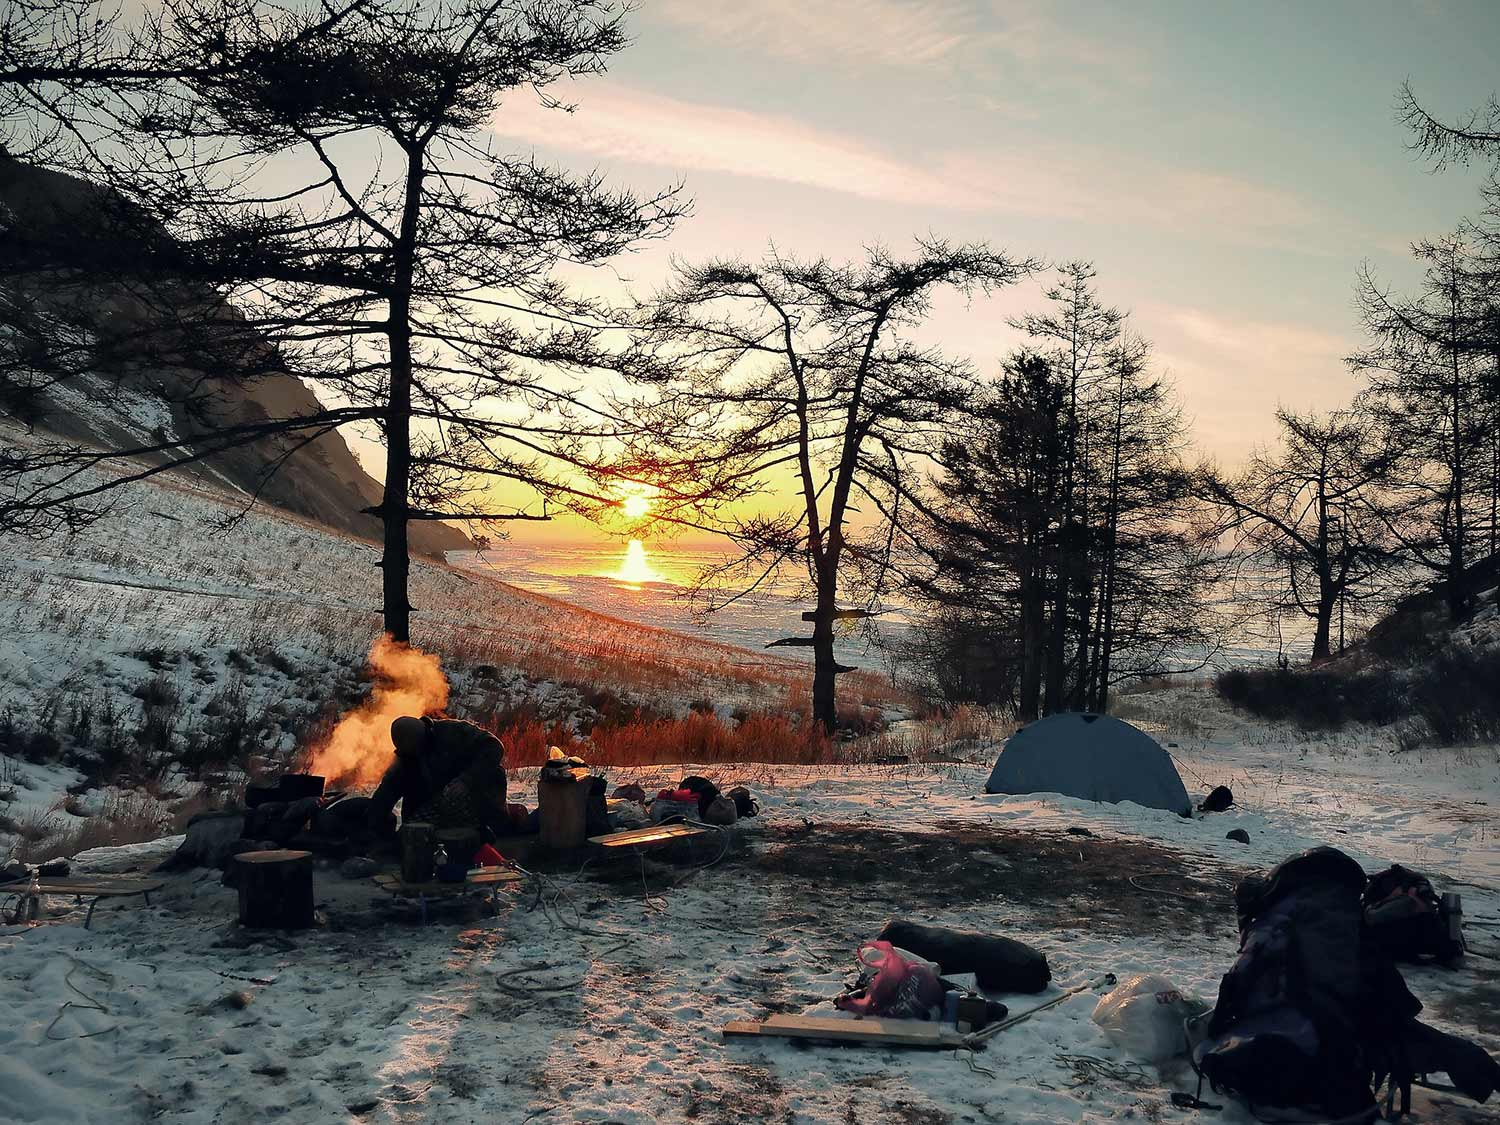 A wintry landscape with a small campsite and burning fire.